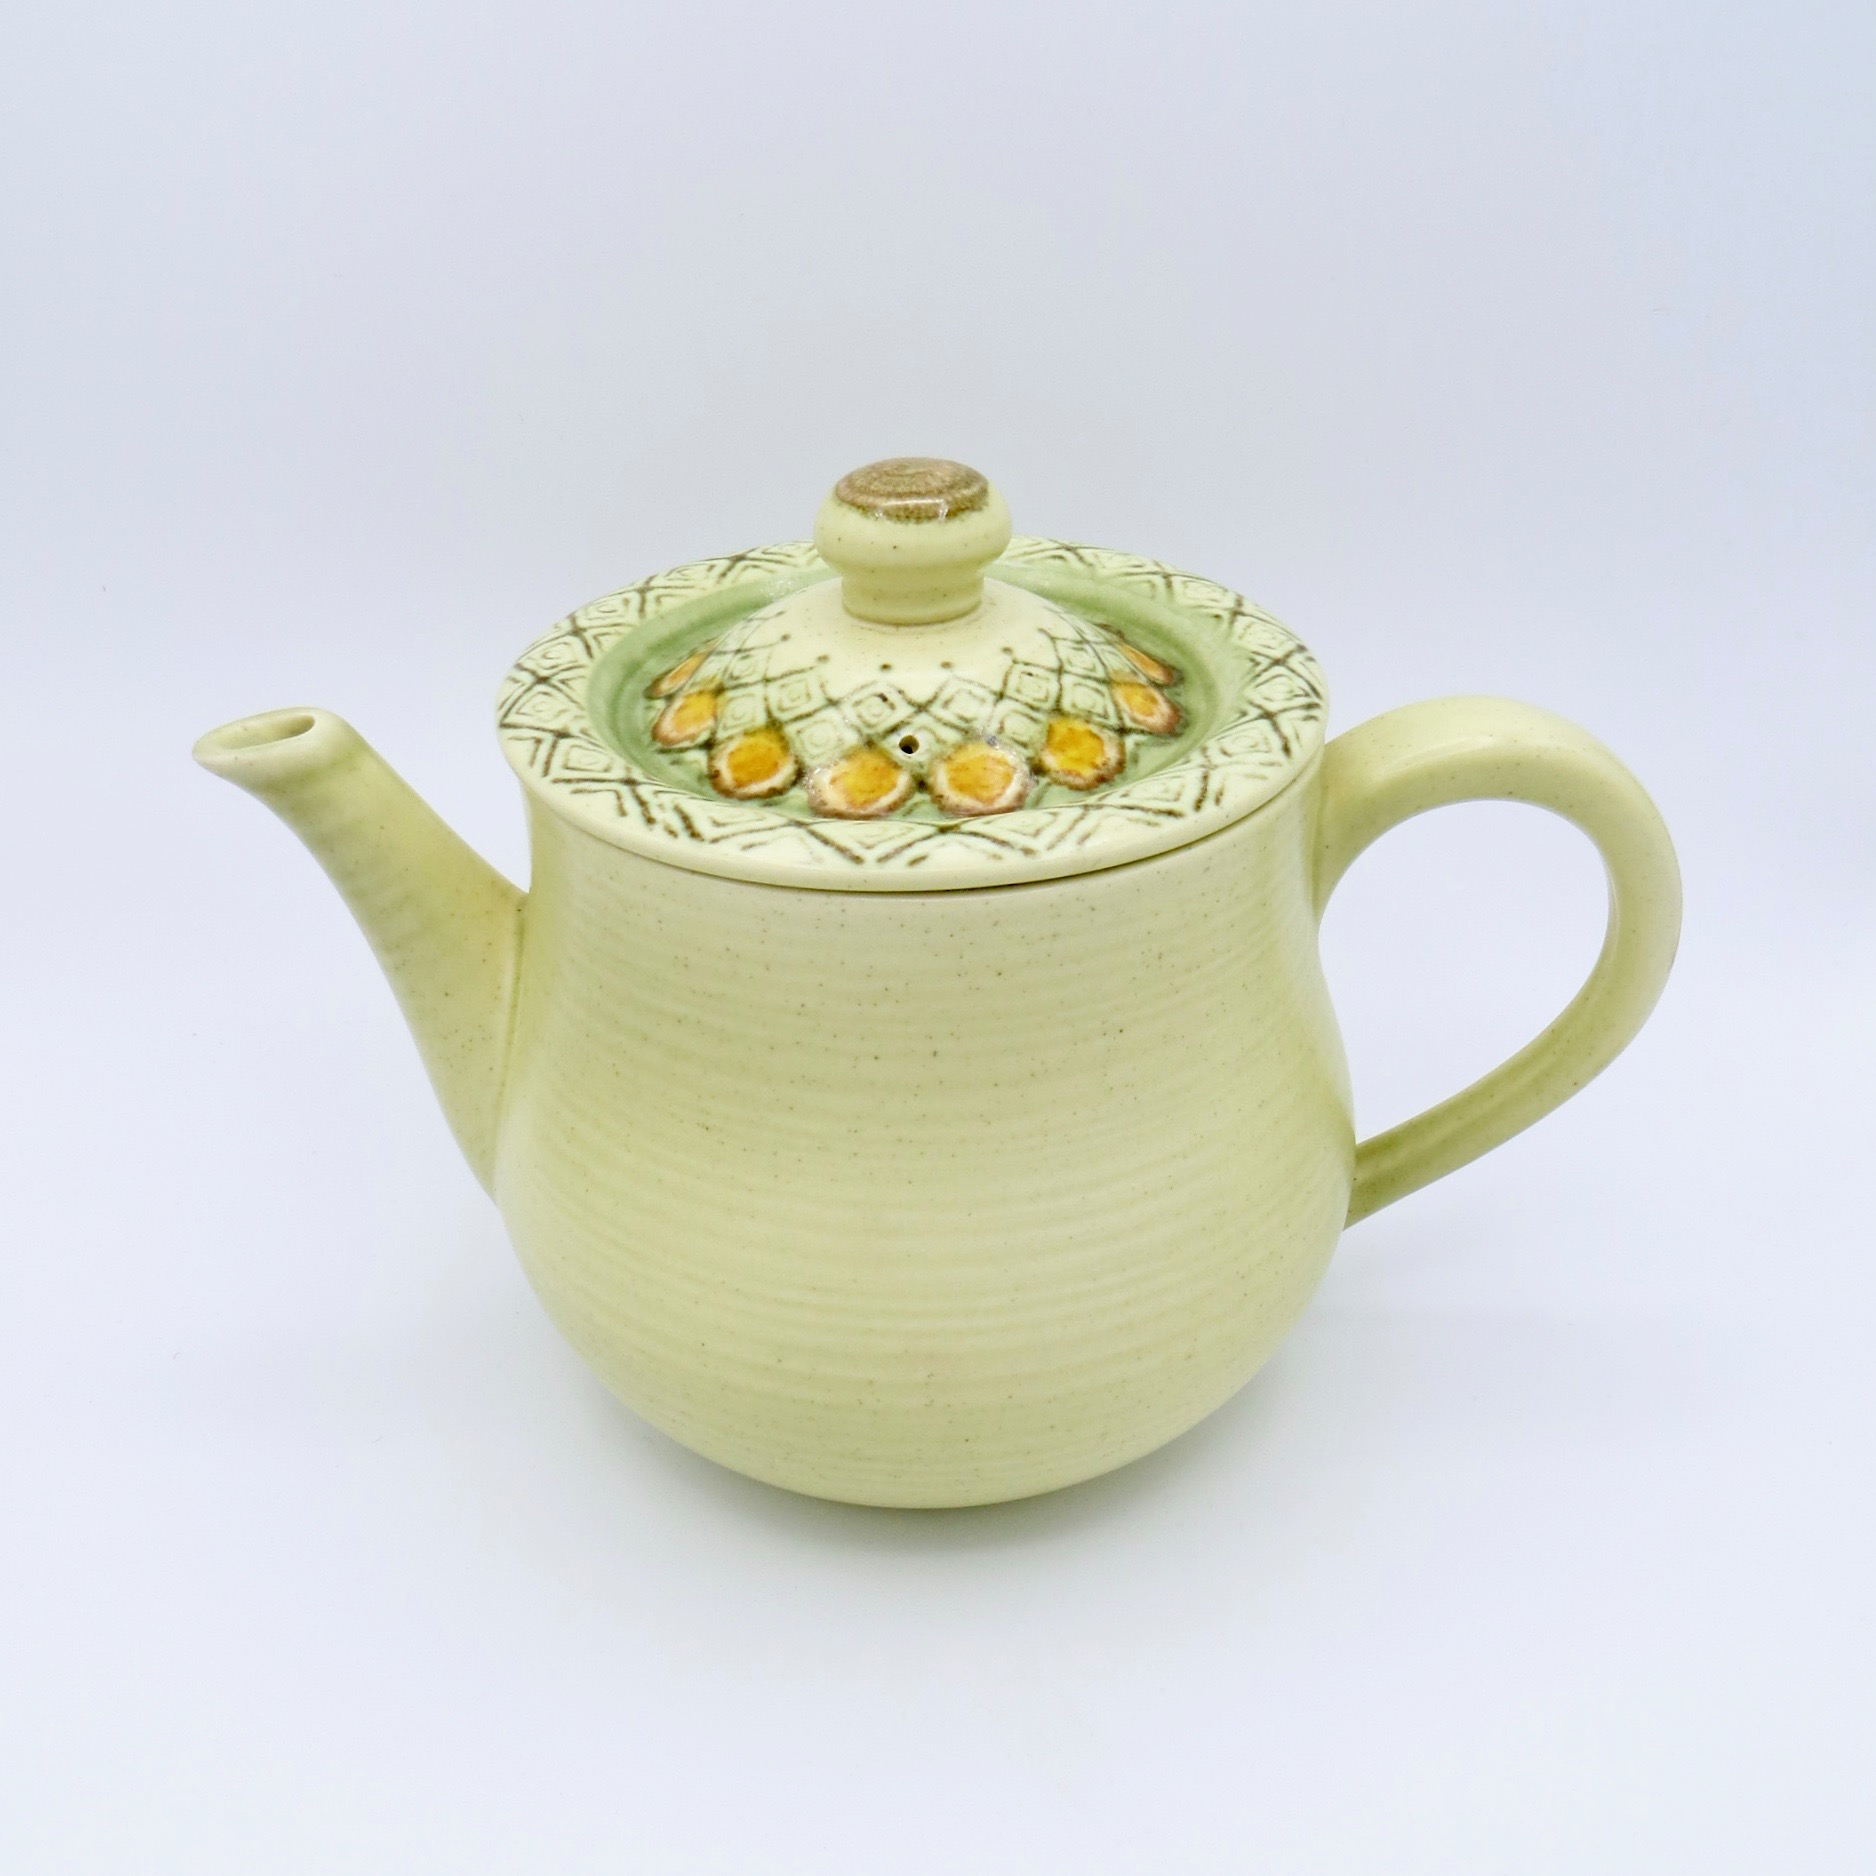 English Pottery Teapot